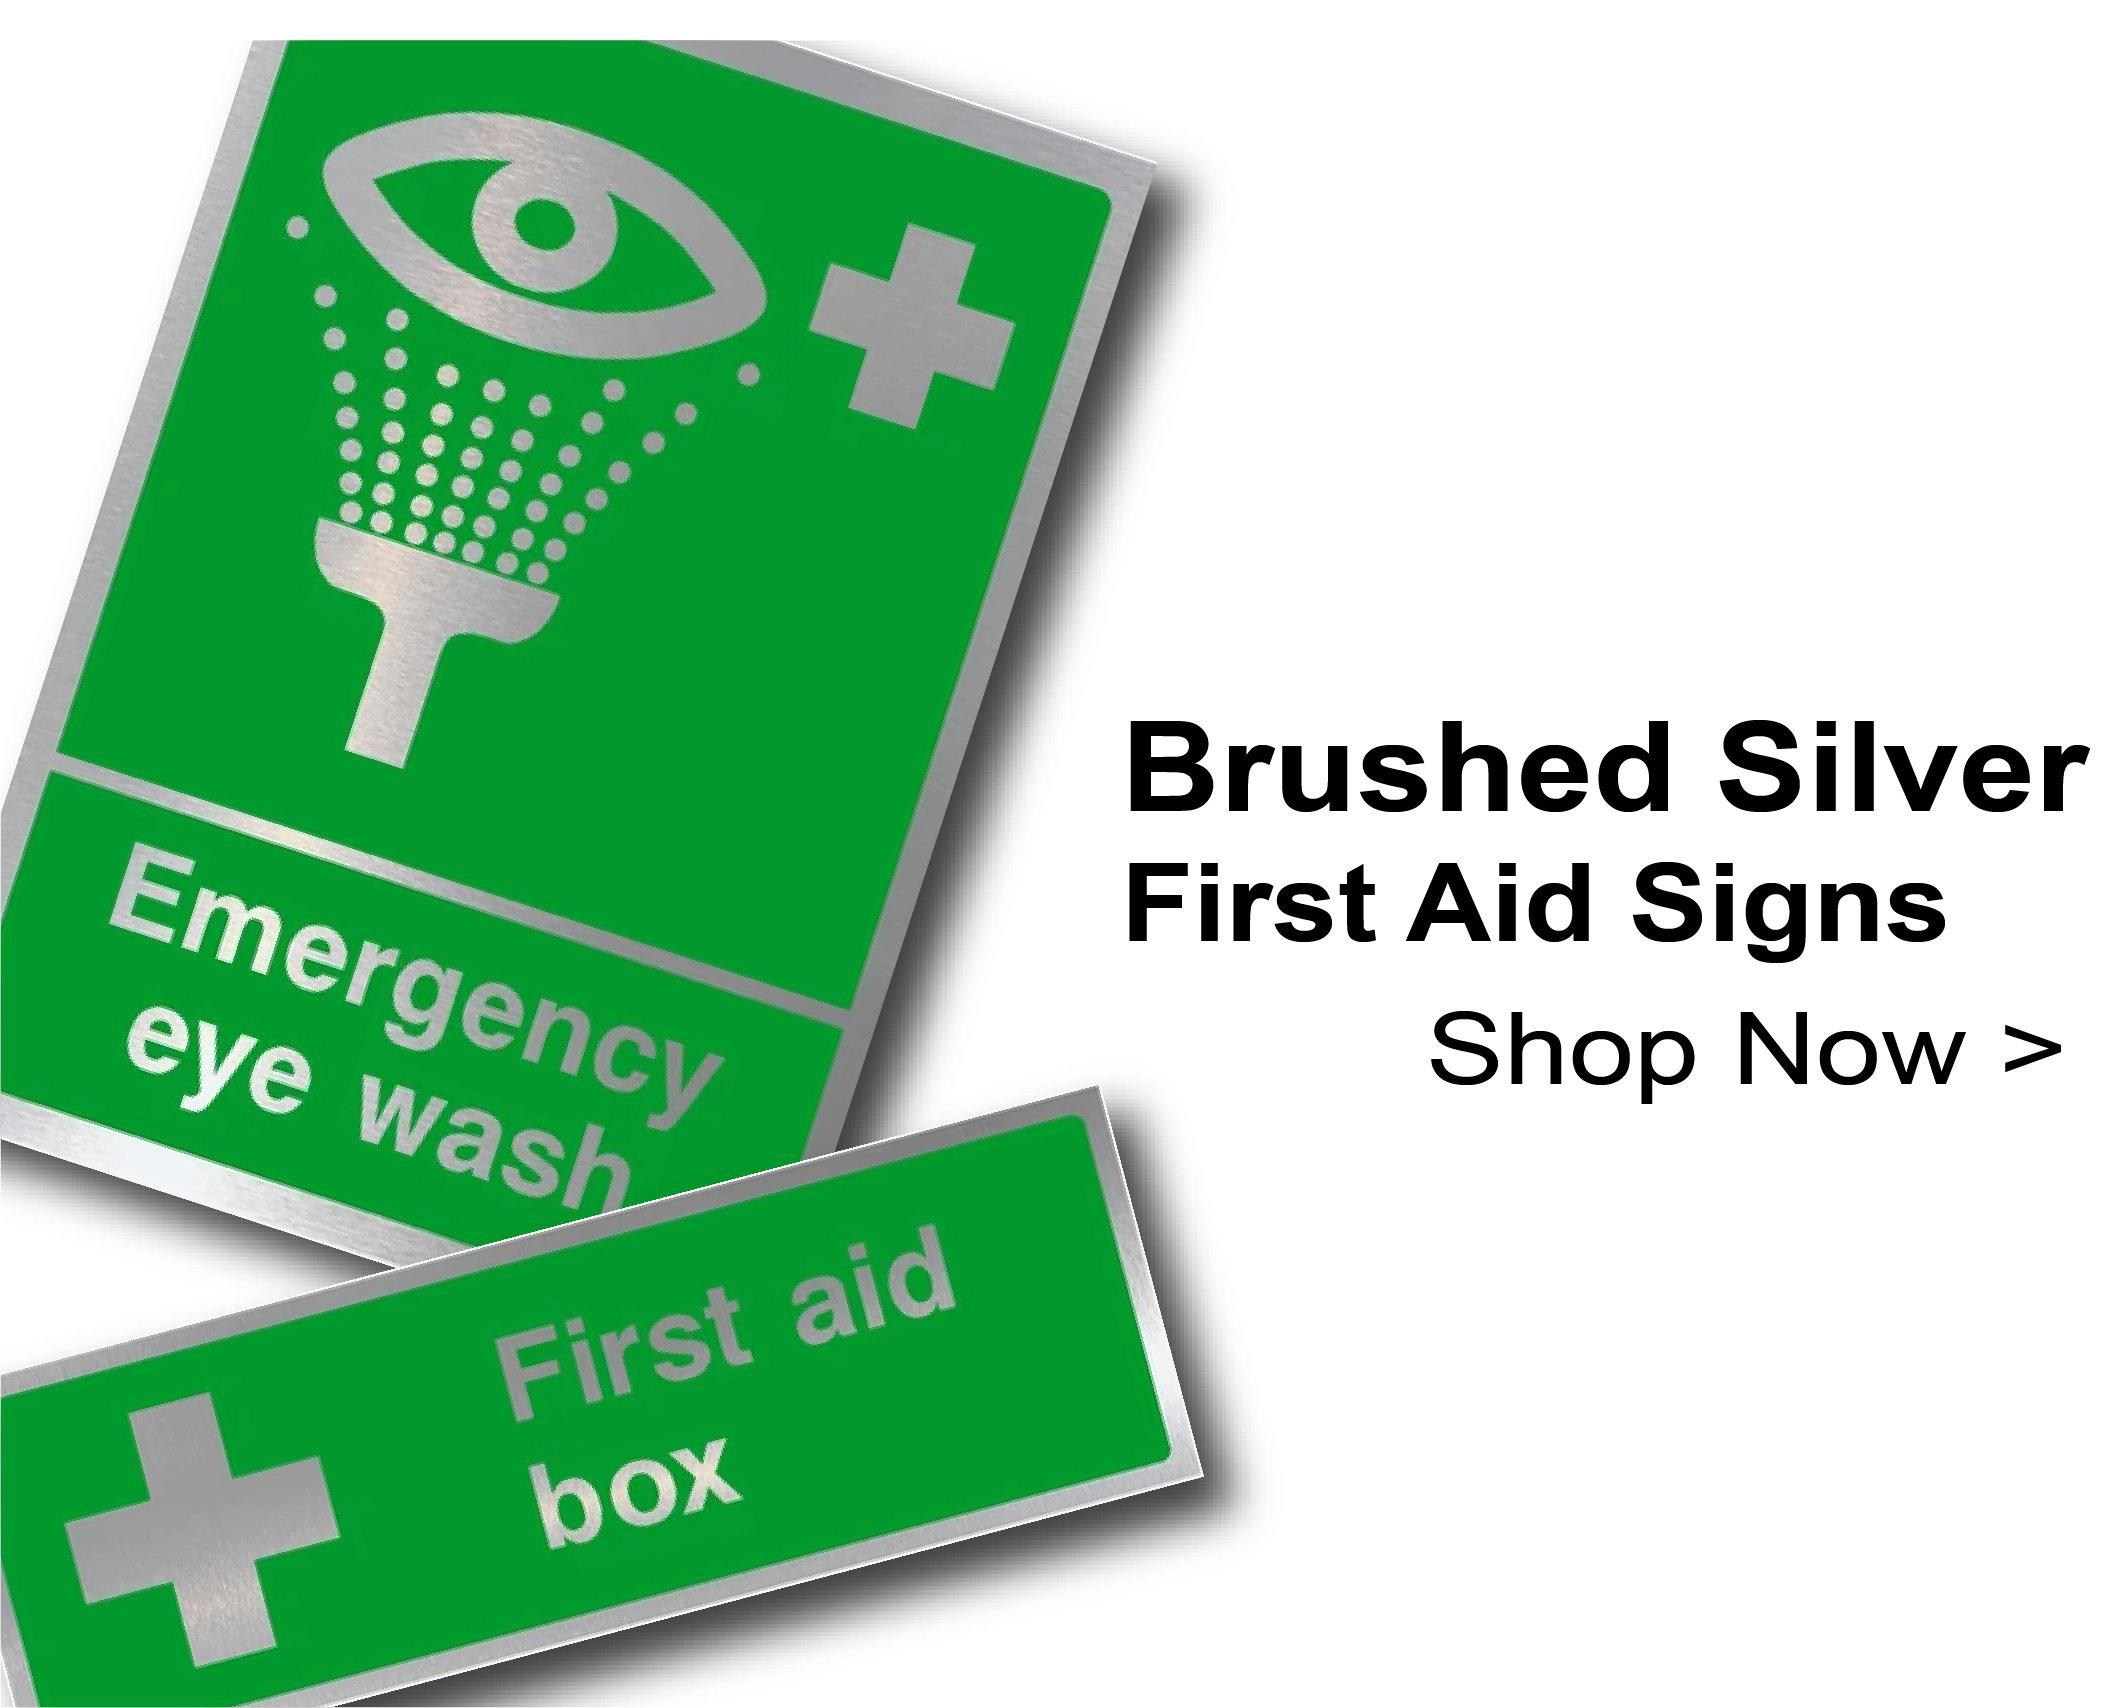 Brushed Silver First Aid Signs